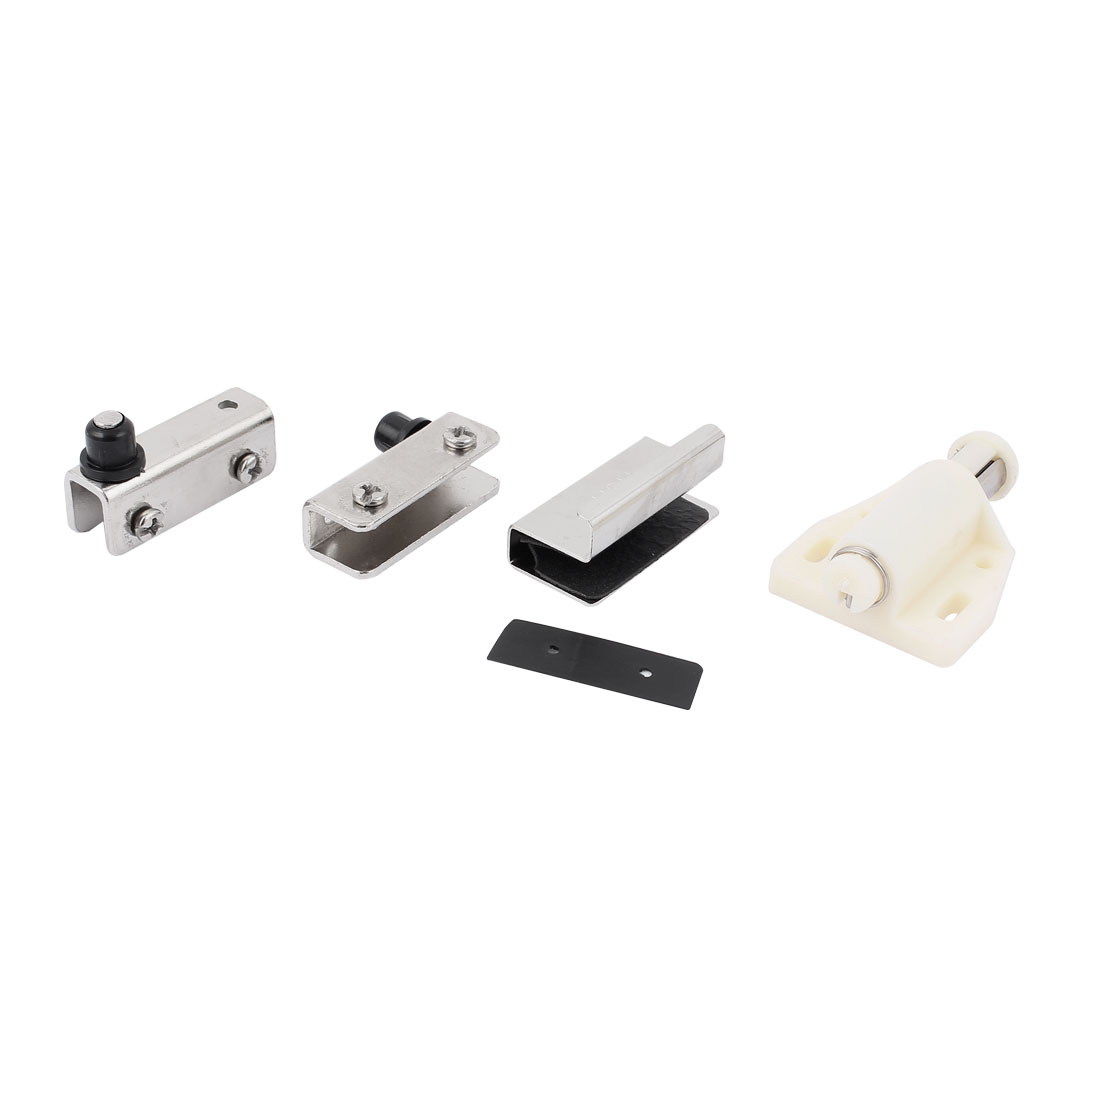 White Single Head Magnetic Catch Latch Clips Set for Showcase Glass Door